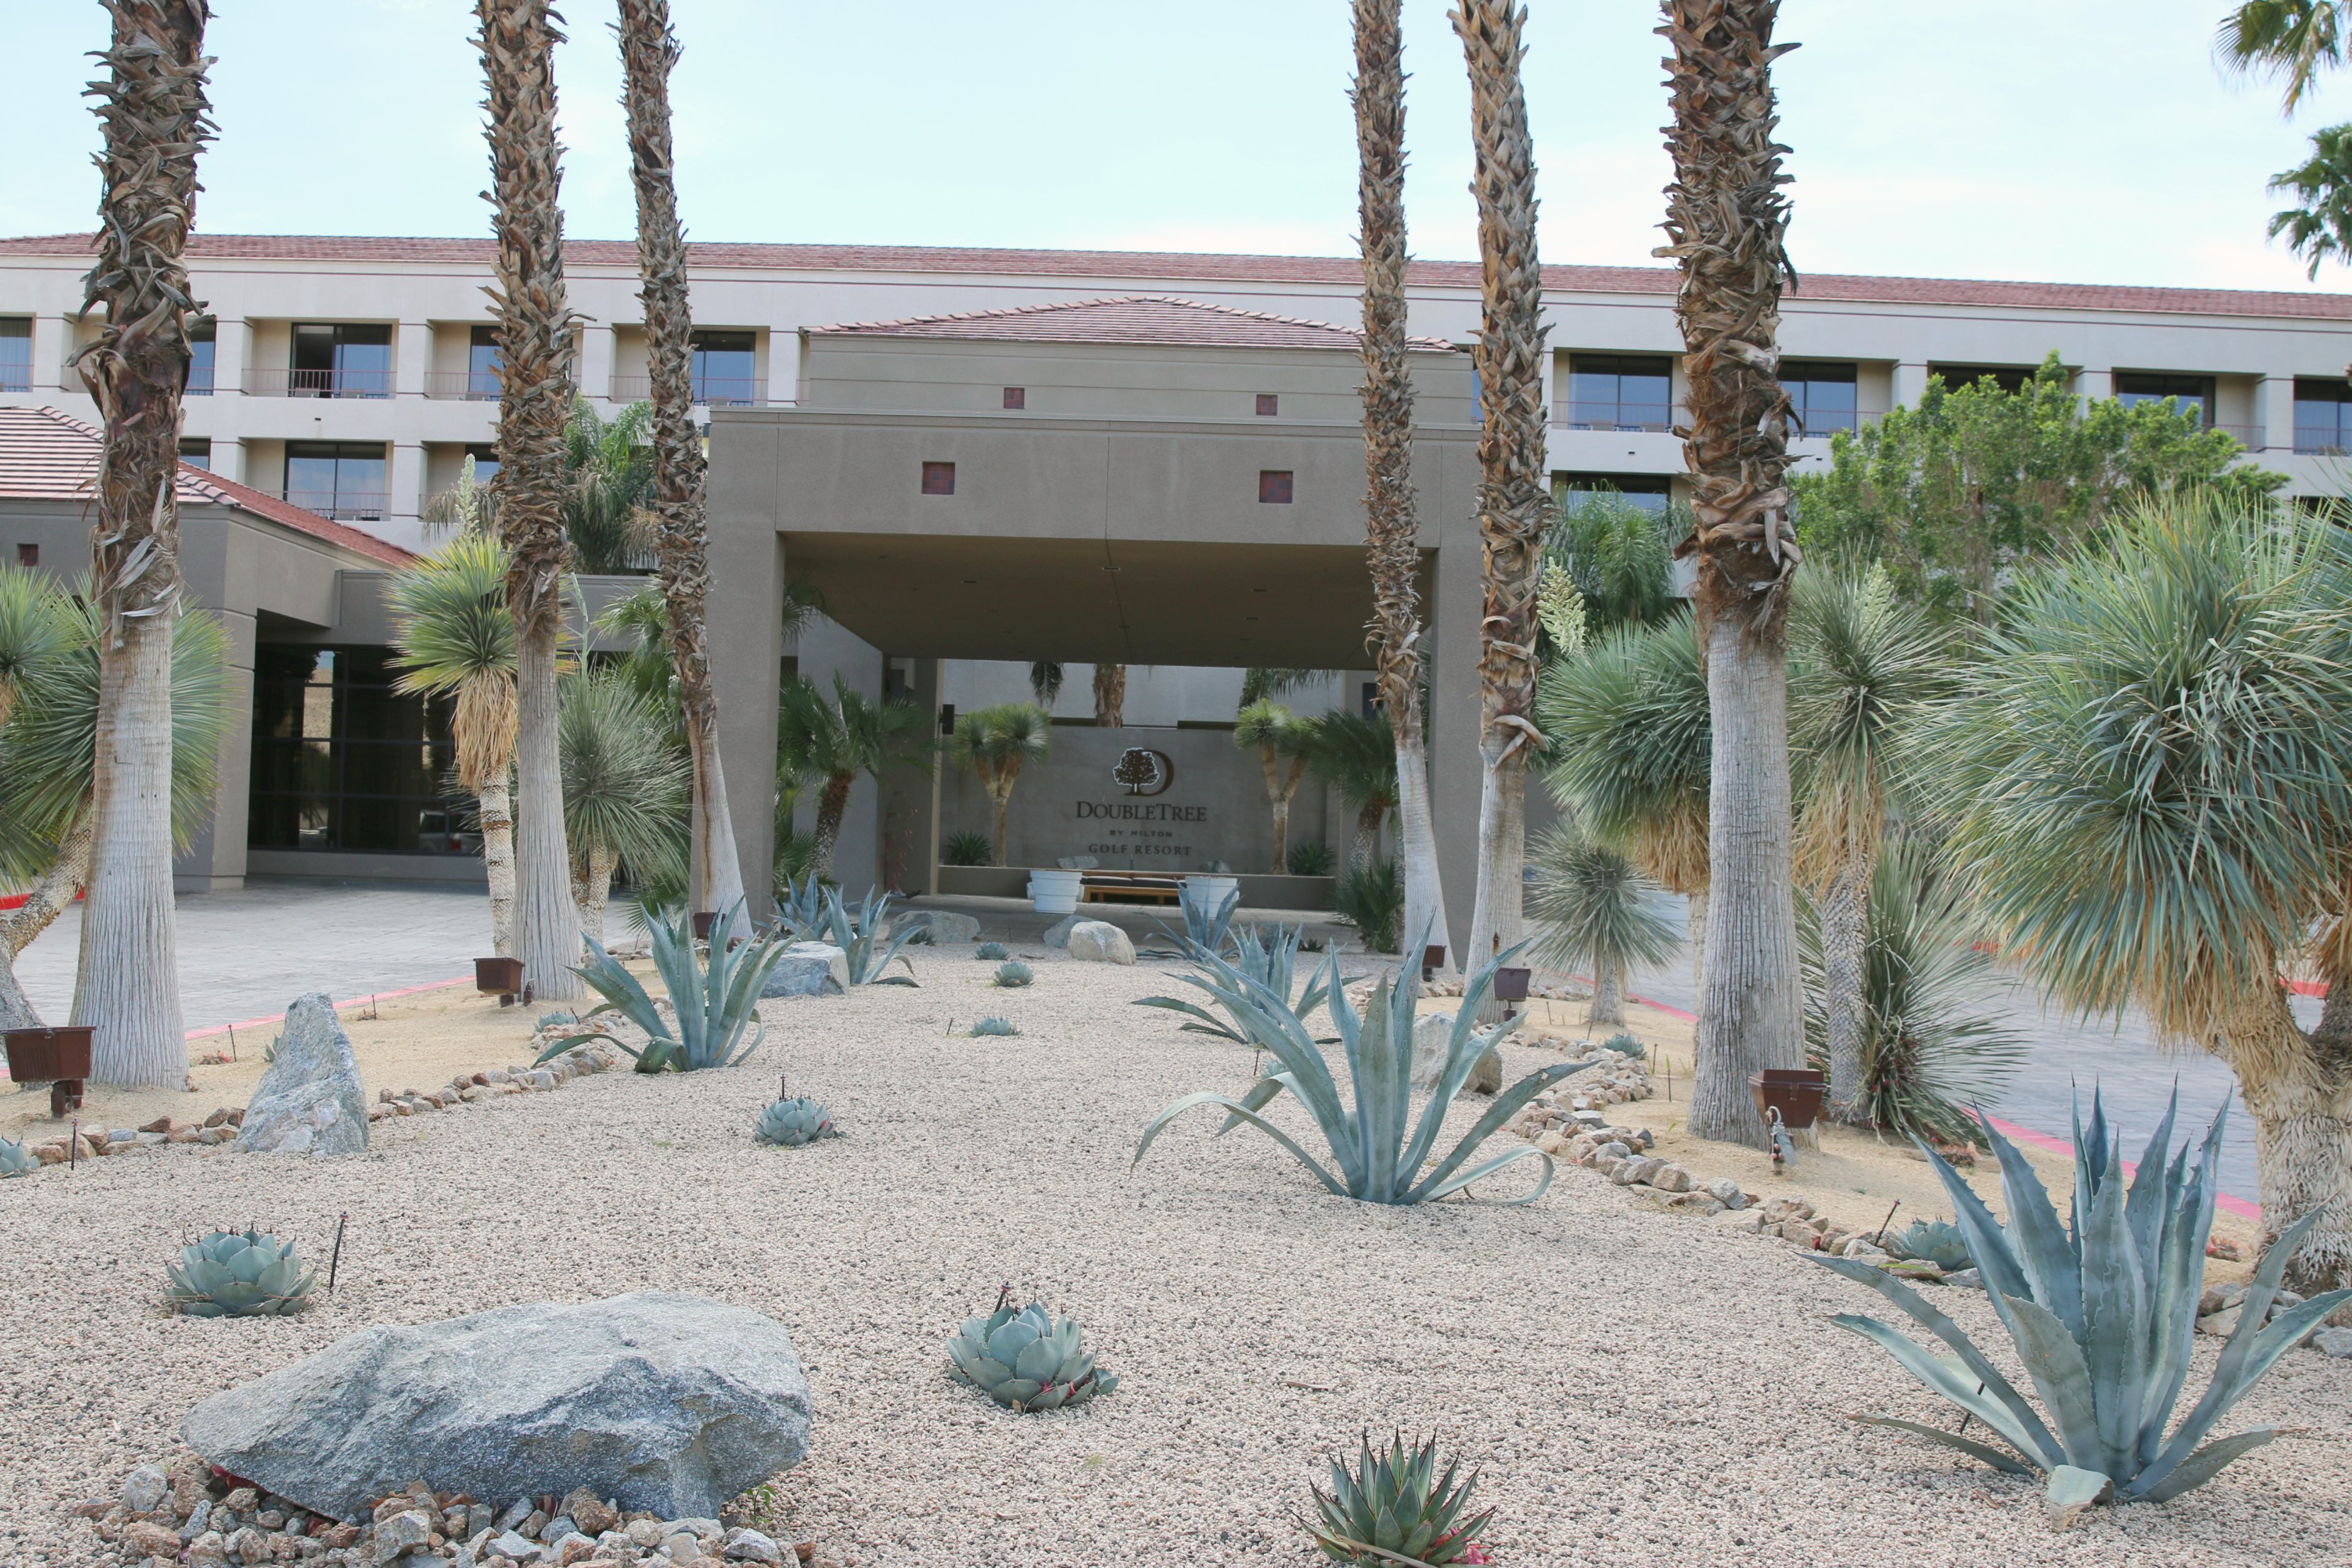 DoubleTree by Hilton Hotel Golf Resort Review